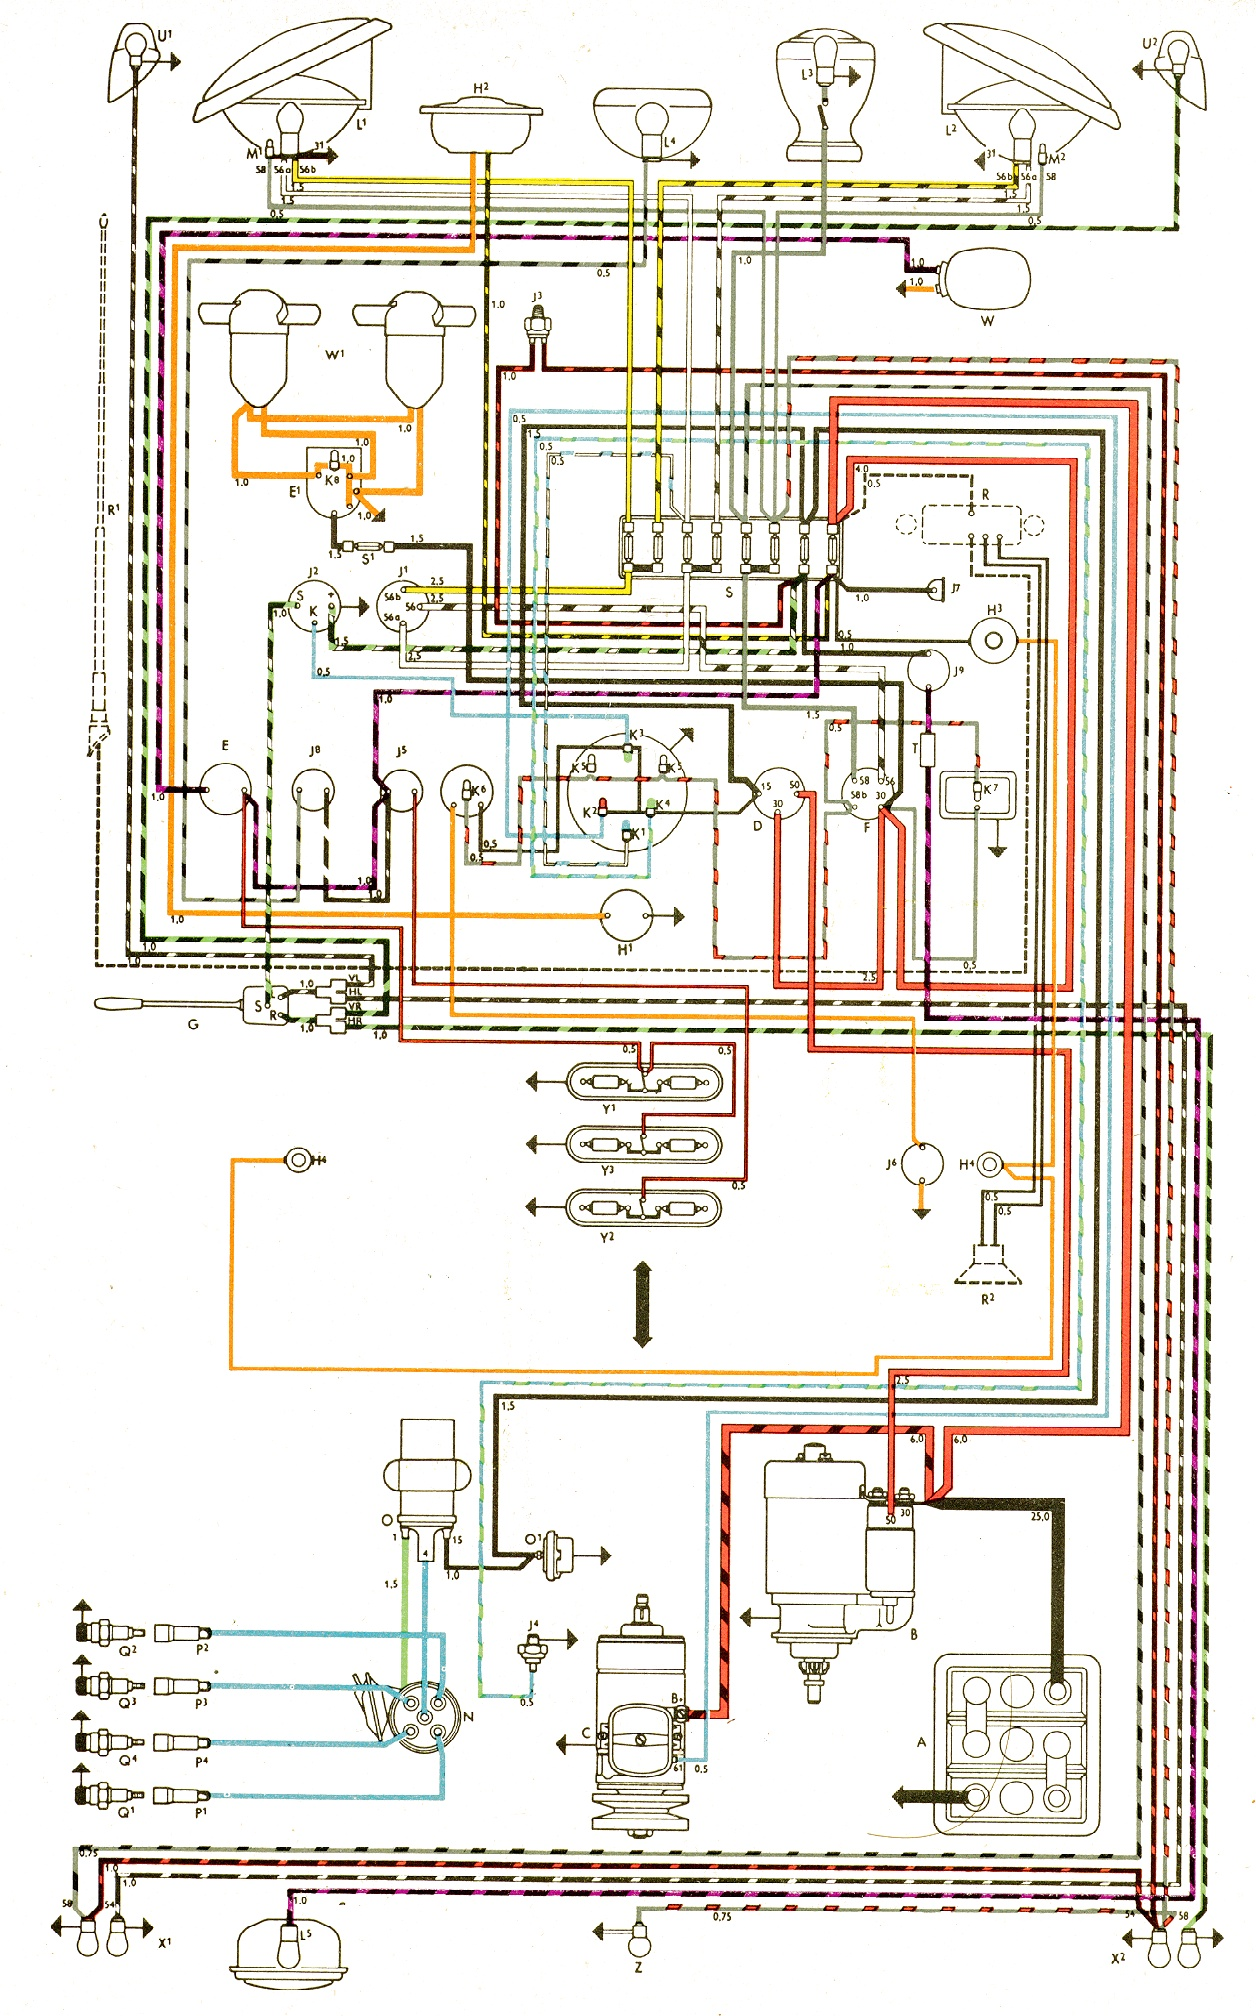 Vw Bus And Other Wiring Diagrams Volkswagen Diesel Engine Diagram Com